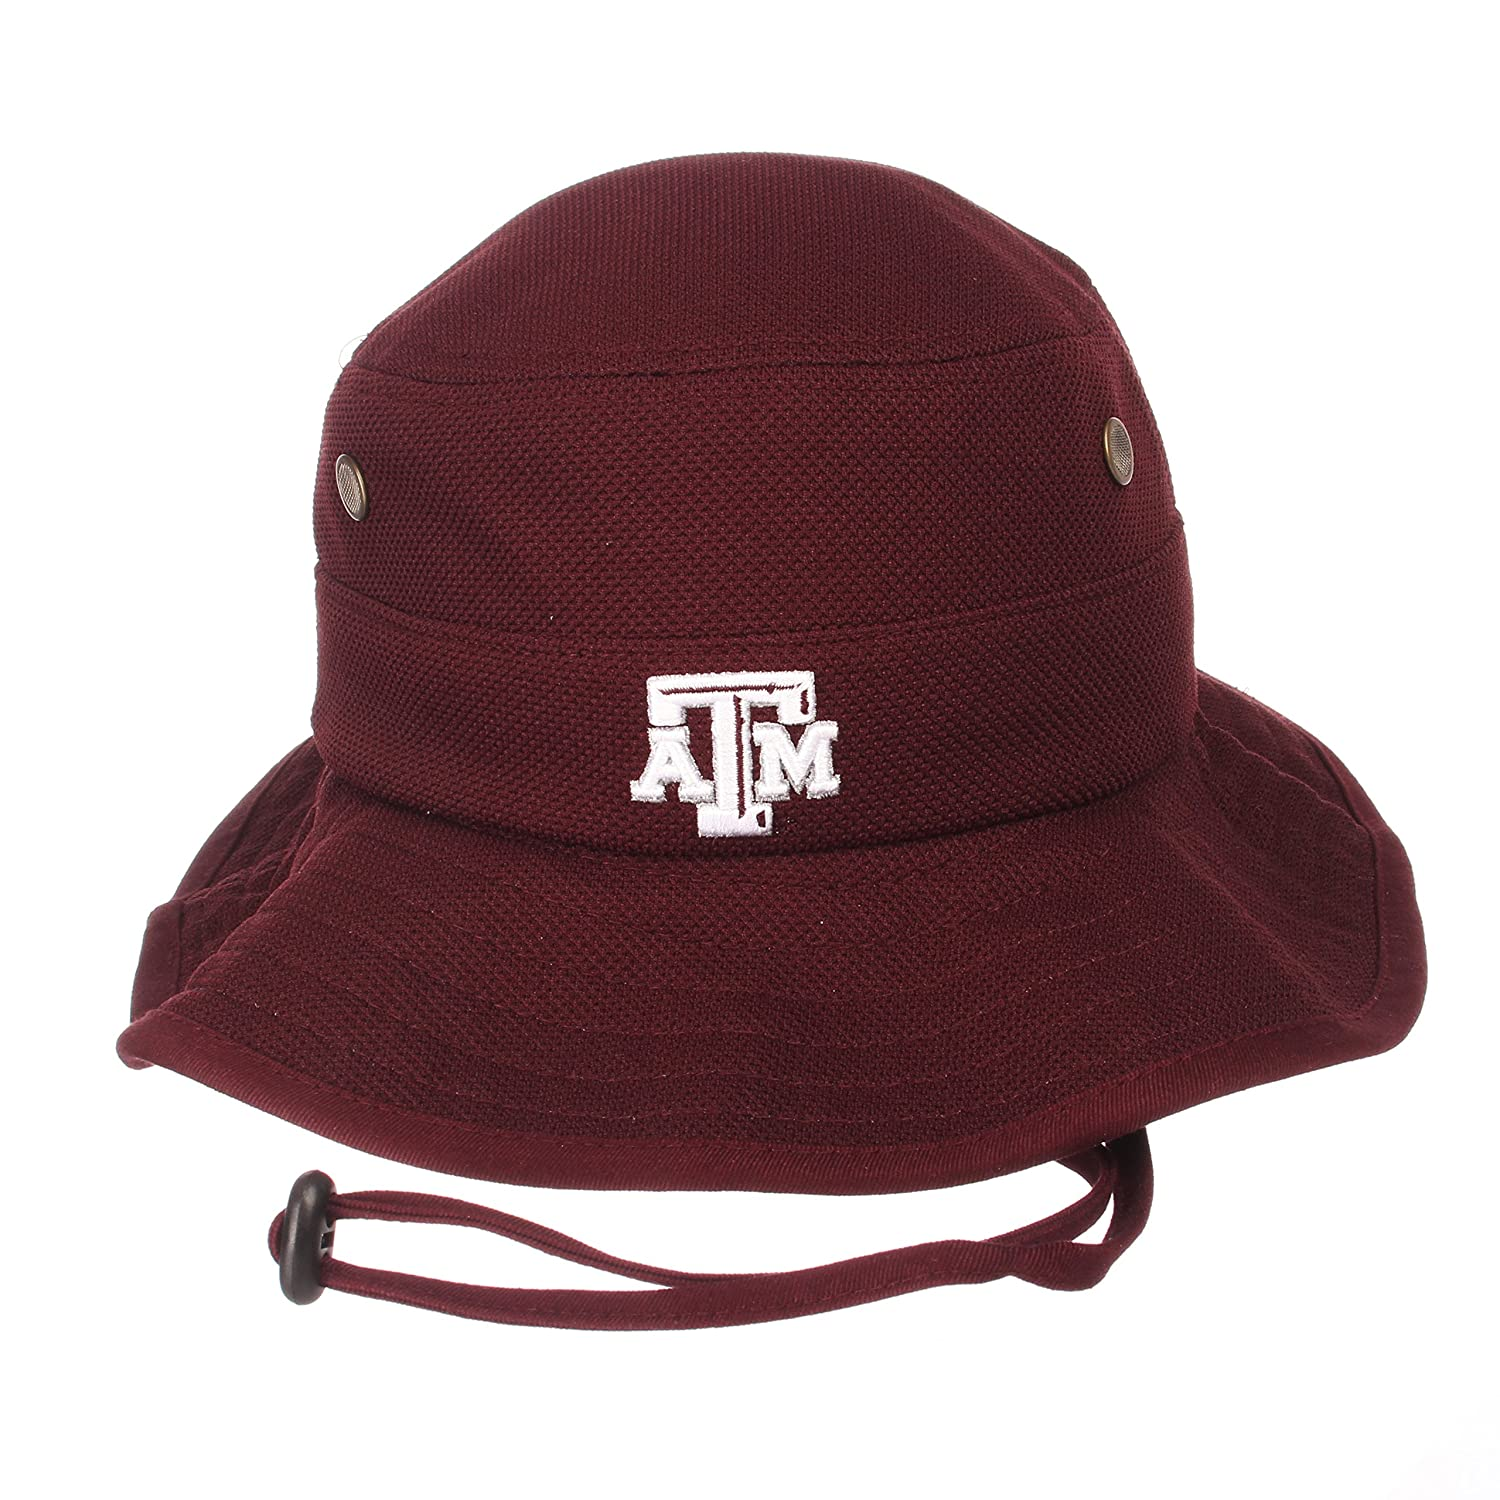 29728ede Amazon.com : Zephyr Men's Texas A&M Aggies Coach Bucket Action Grid Stretch  FIT HAT Maroon L : Sports & Outdoors